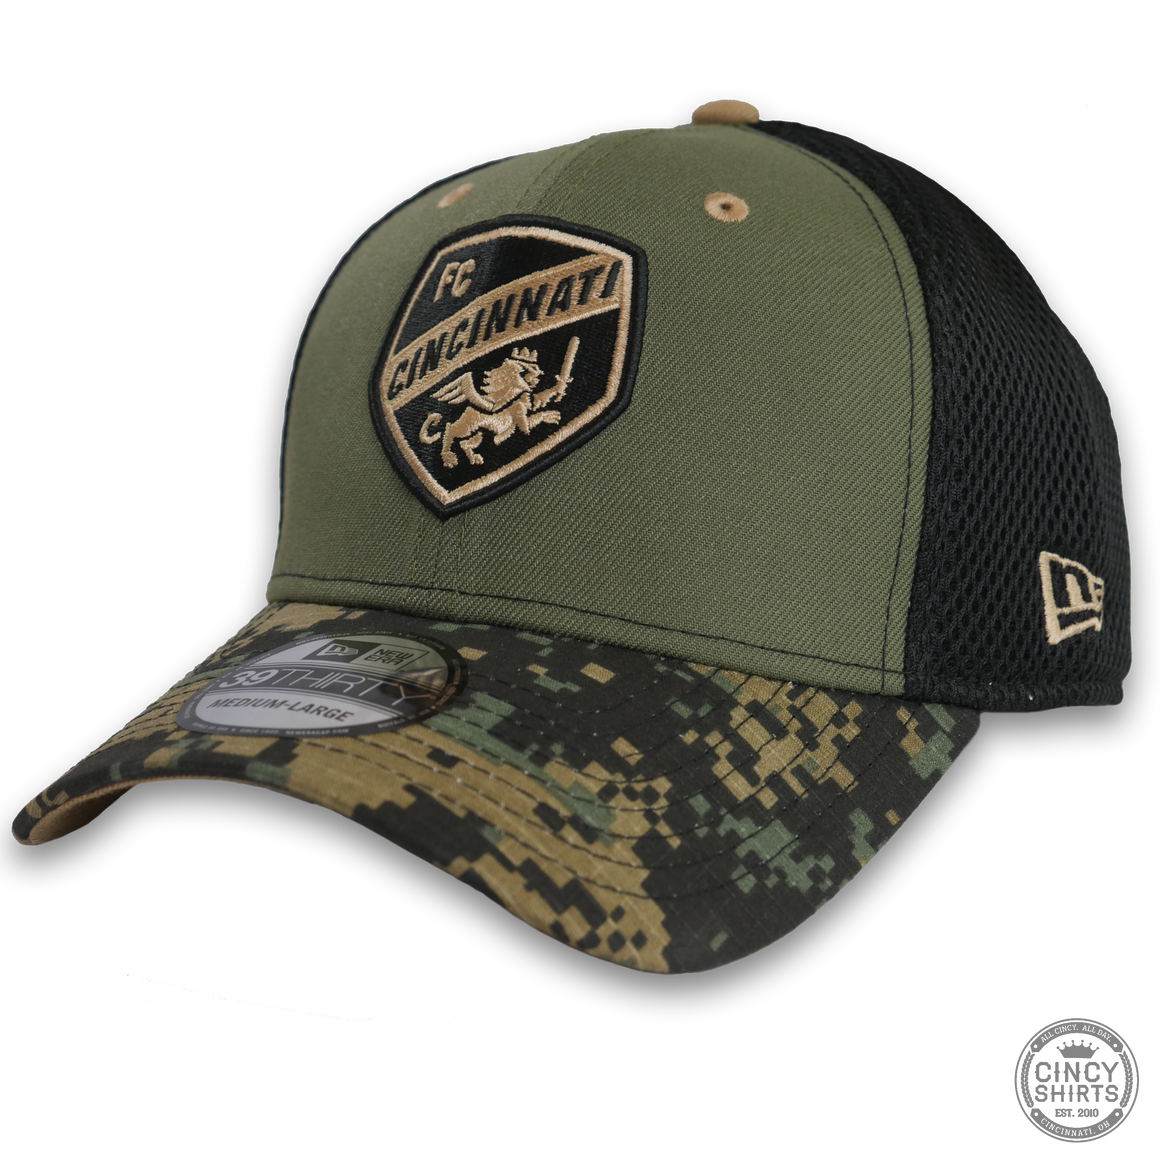 FC Cincinnati Green & Black Camo Hat - Cincy Shirts